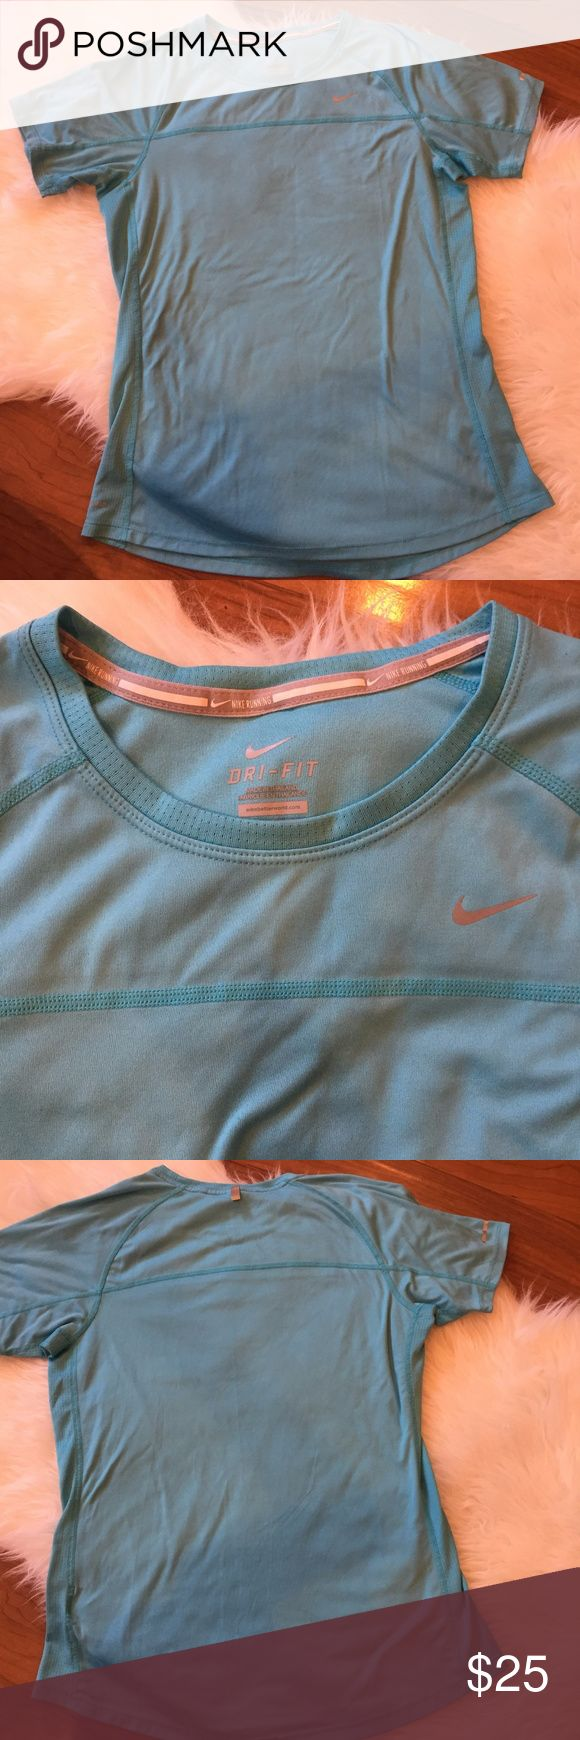 """Nike Dri-Fit Shirt A women's Nike blue reflective silver short sleeve. Fabric provides cooling air flow and breath ability. Condition: gently worn but in near perfect condition. Approx measurements: chest: 35.5""""-38"""" NO TRADES OR MODELING b:1 Nike Tops Tees - Short Sleeve"""